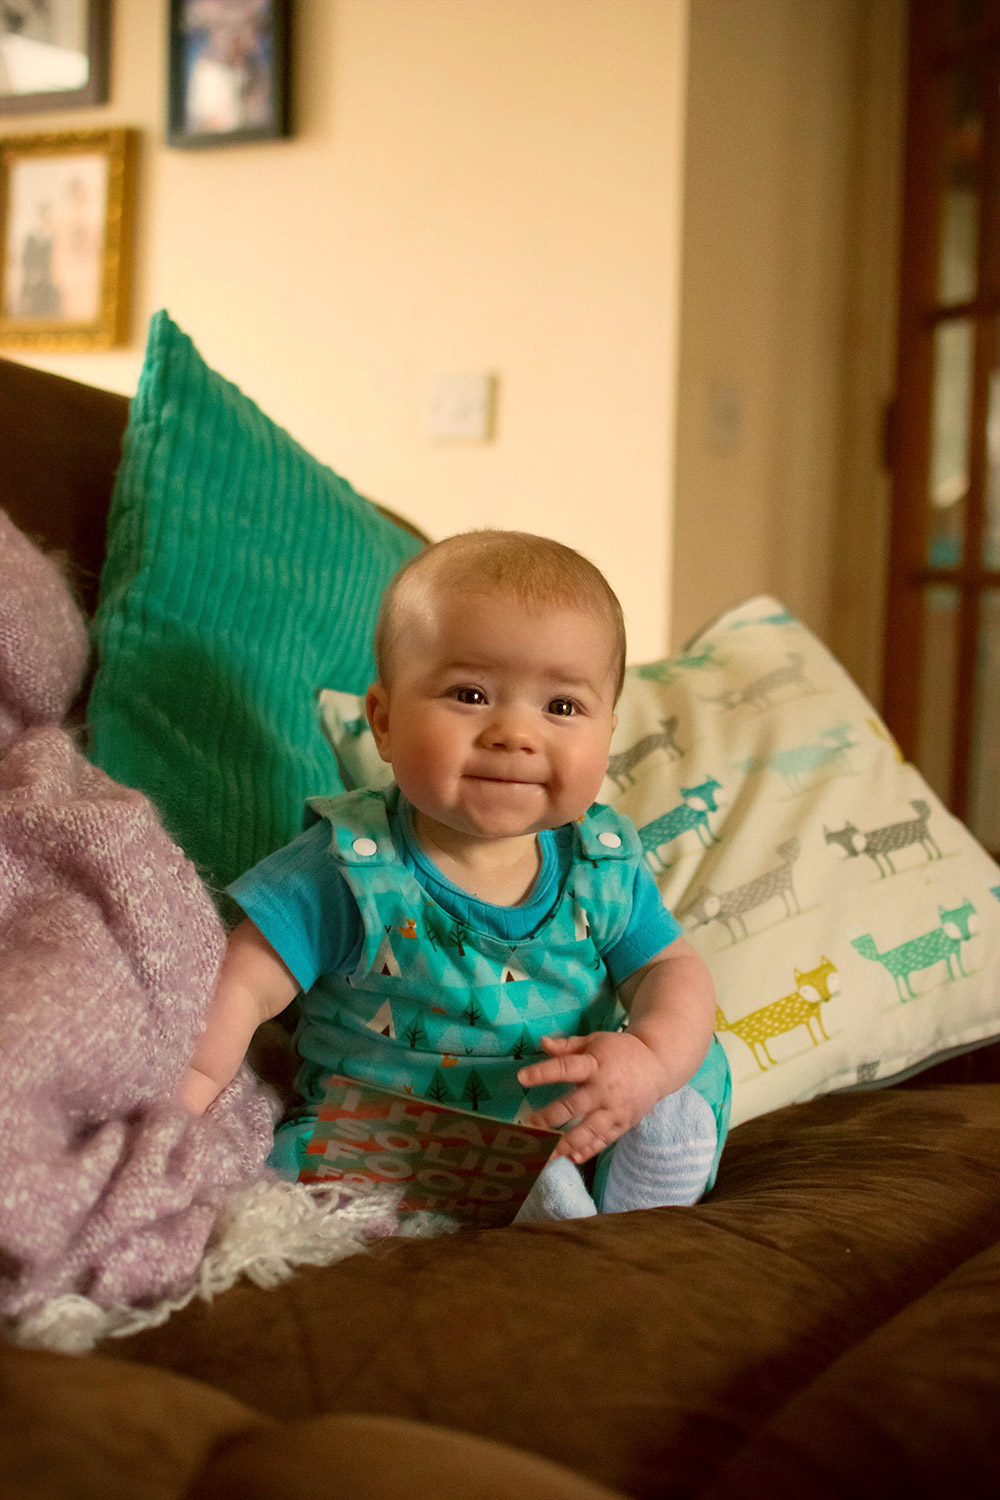 Baby Jesse Blue at 6 months old - Baby boy looking up at camera with huge brown eyes smiling and laughing